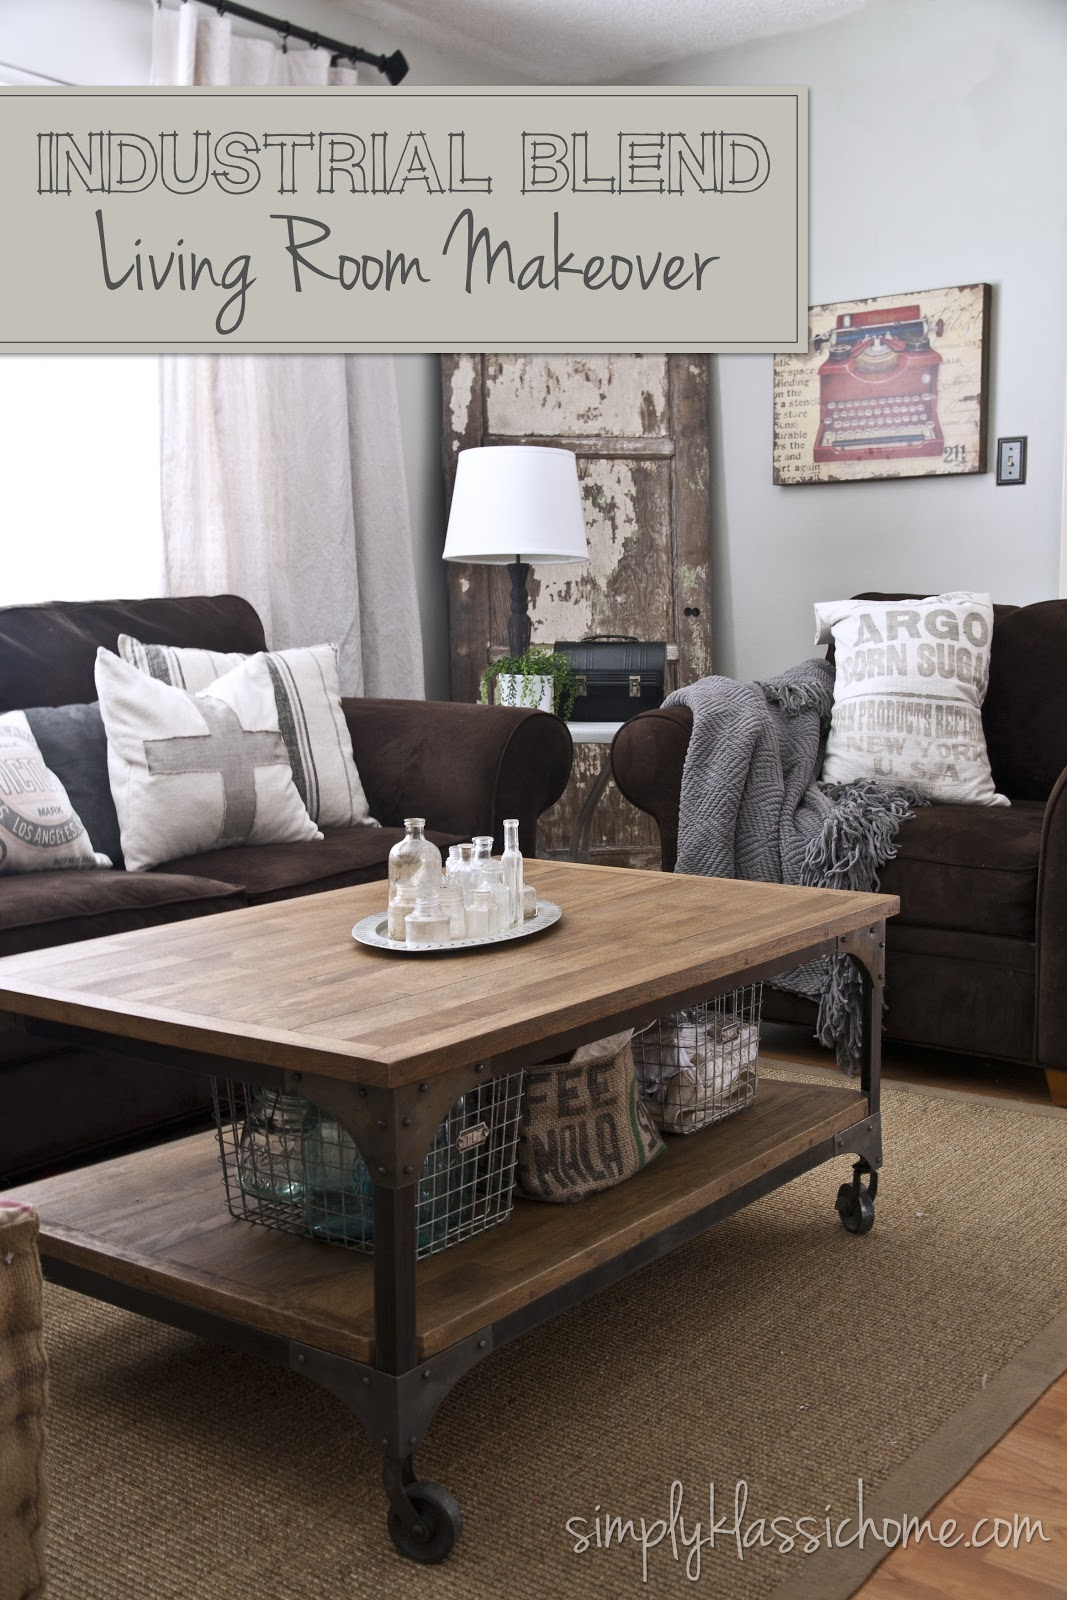 Industrial blend living room makeover reveal yellow - How to decorate a gray living room ...